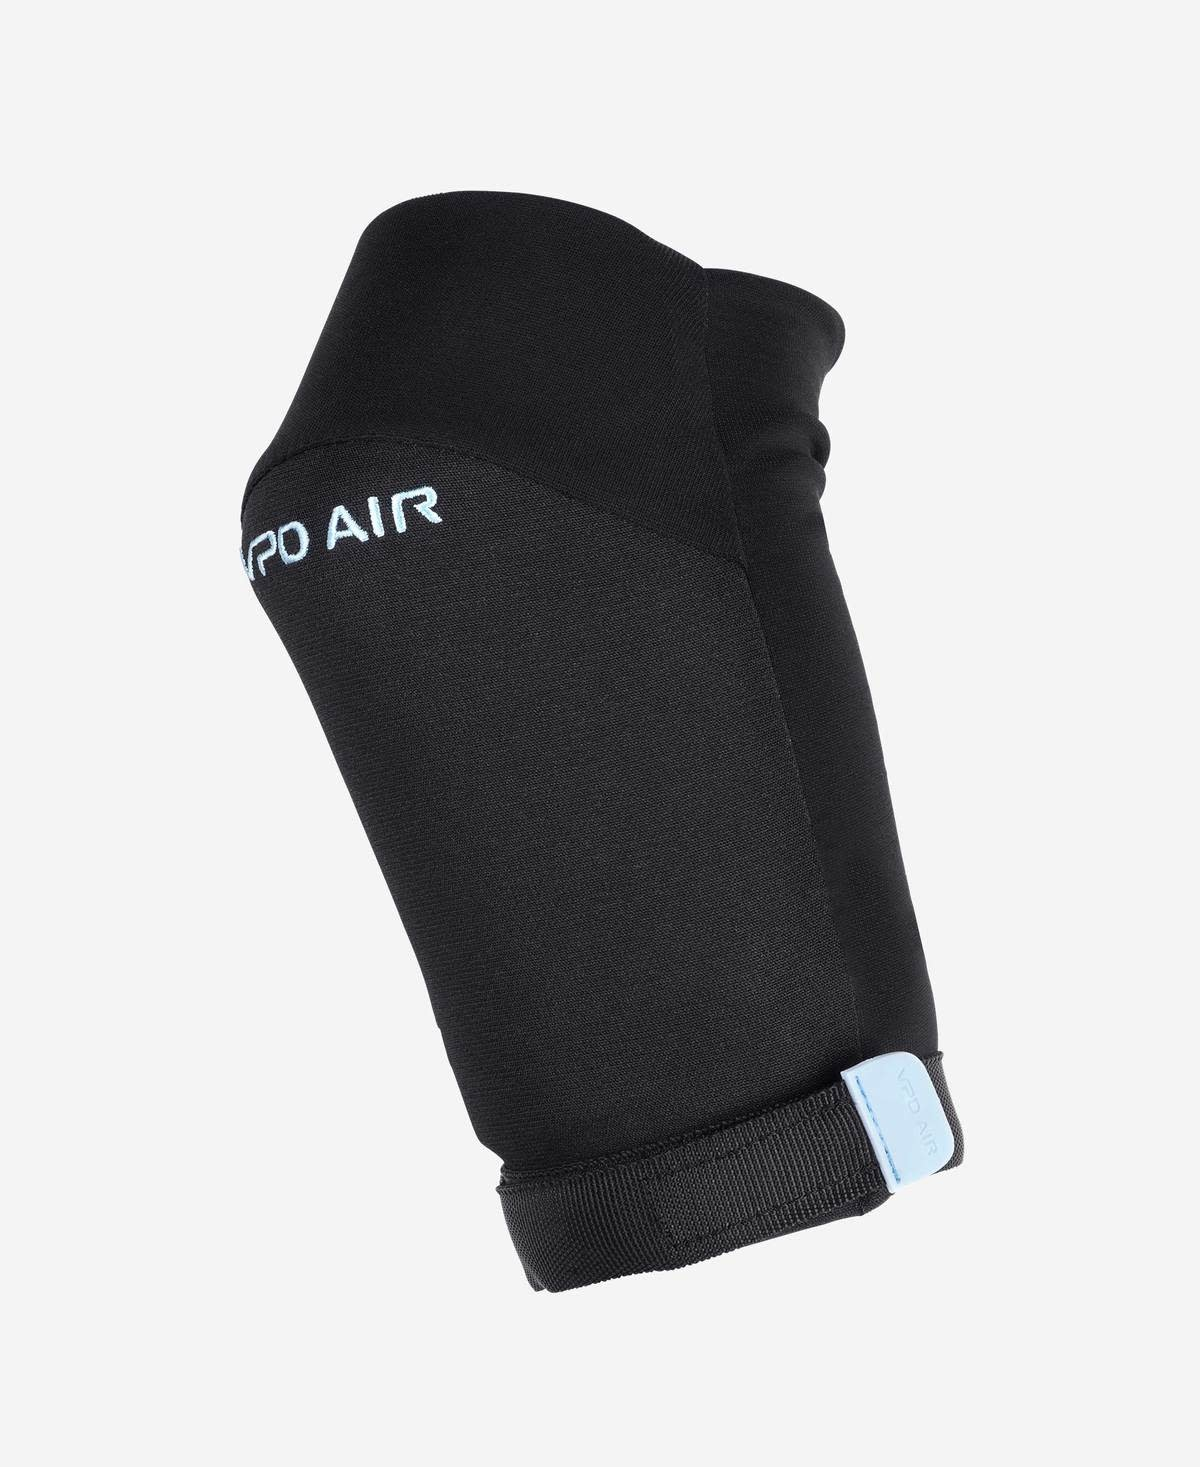 POC POC Joint VPD Air Elbow Protector